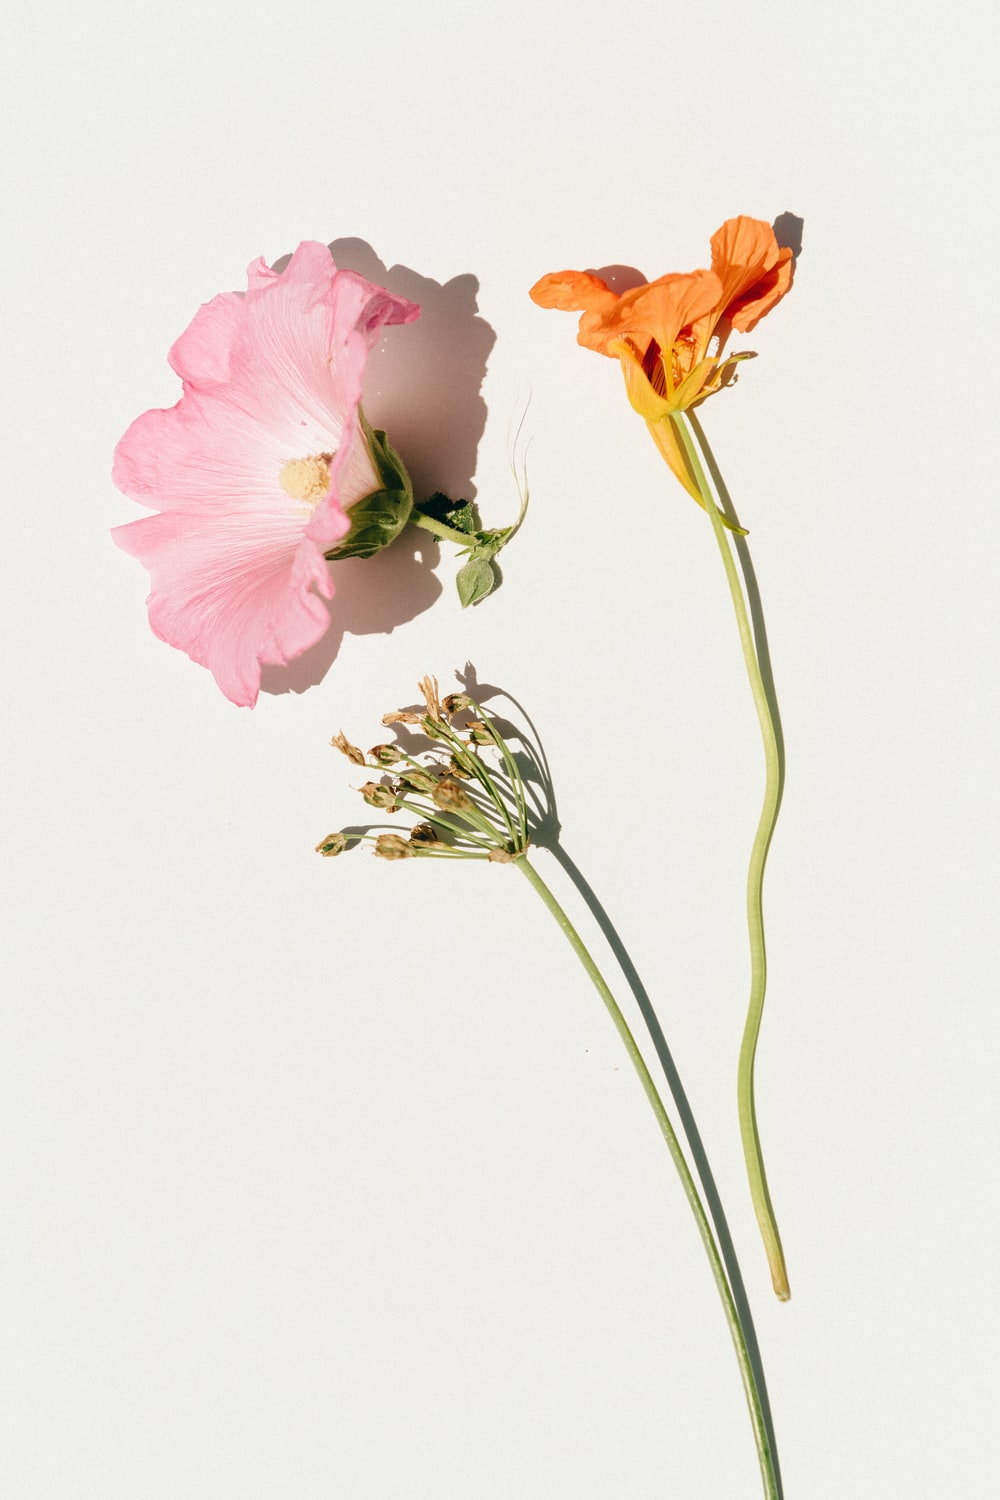 pink and yellow flowers on white background